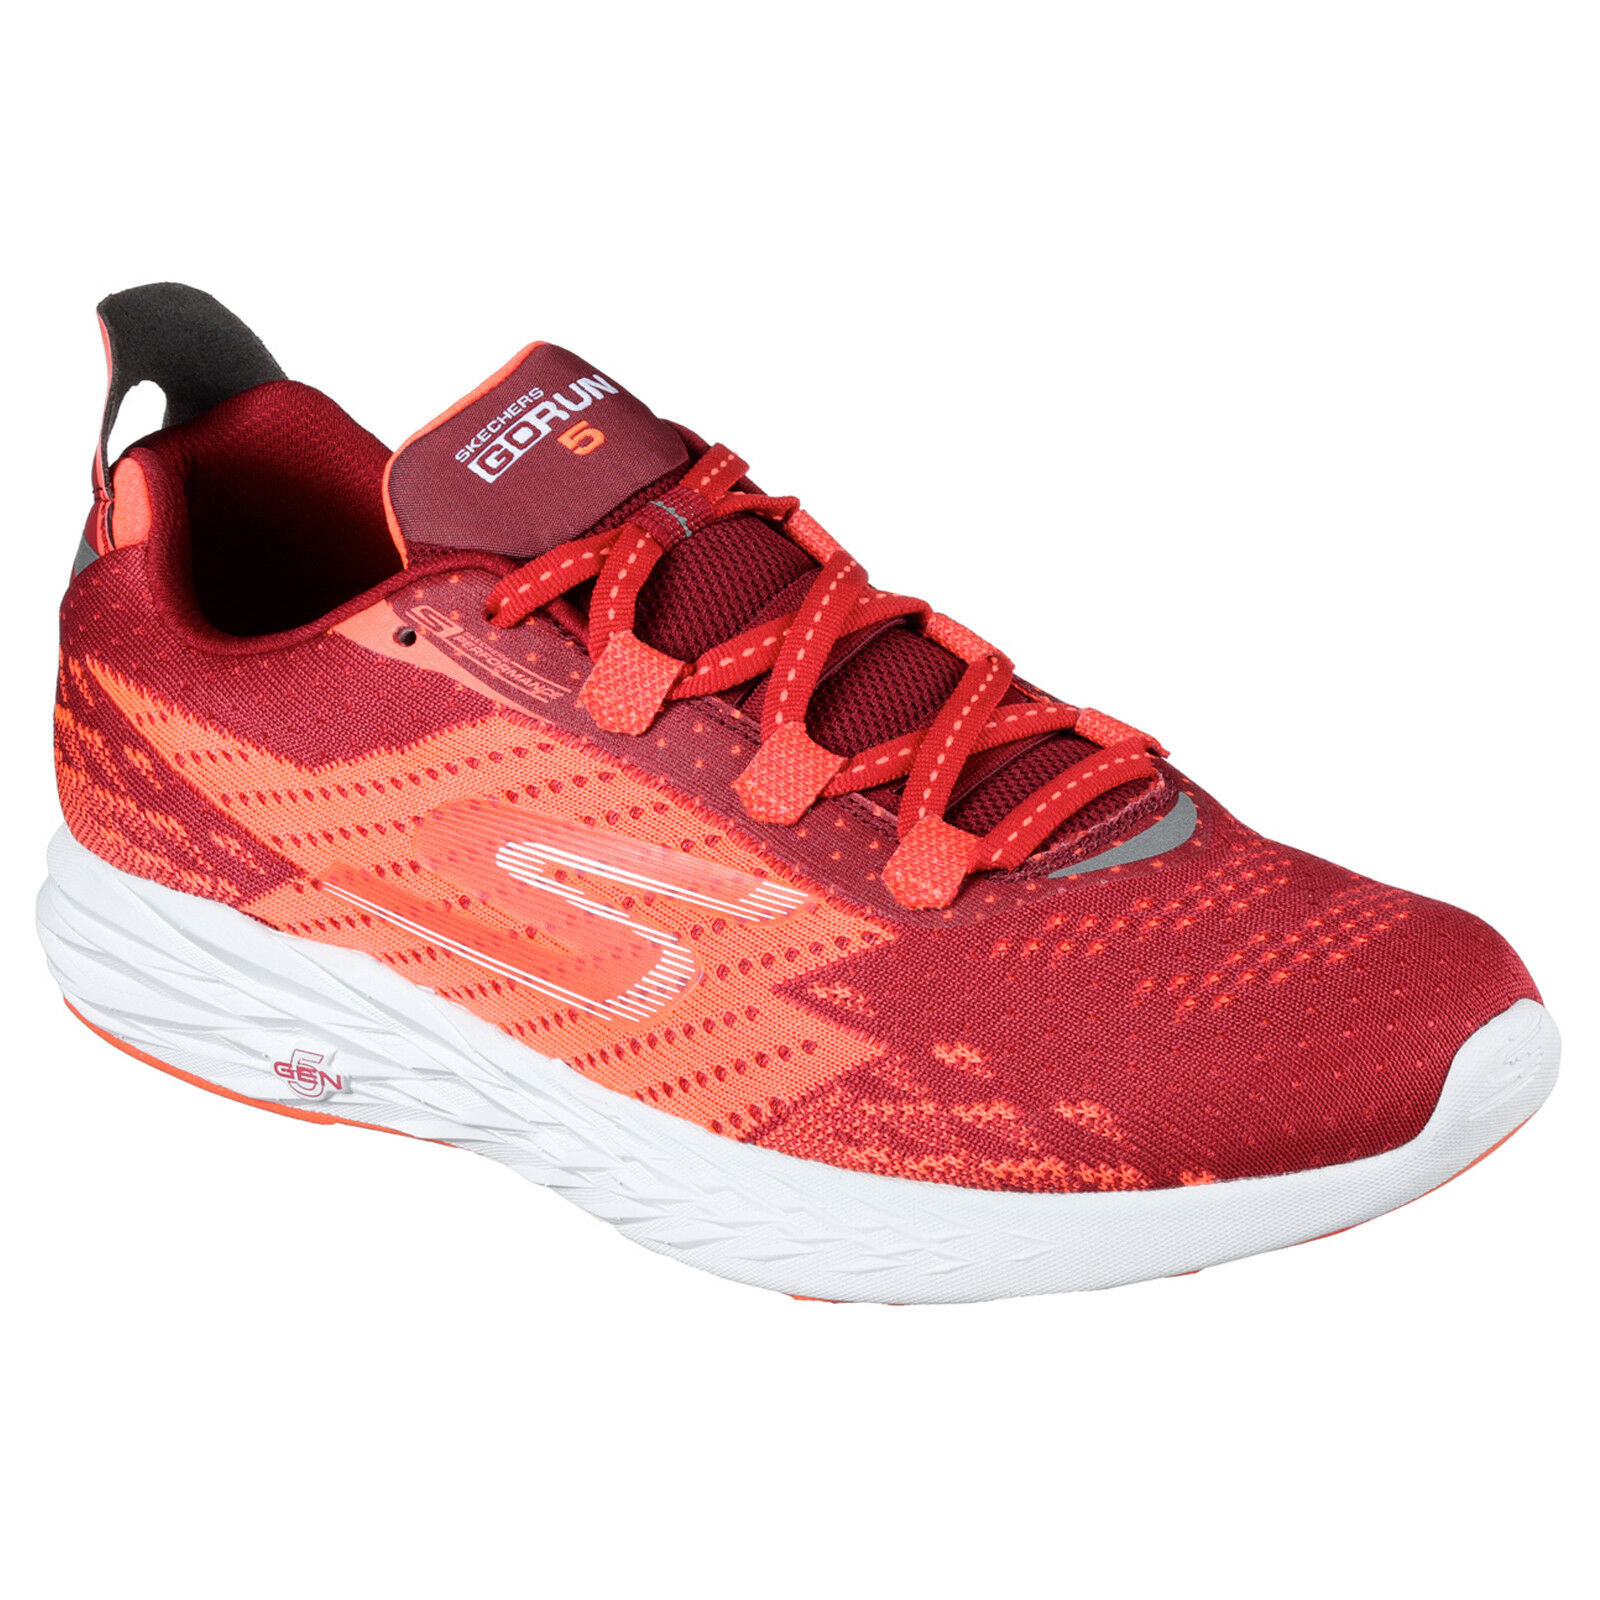 Skechers GoRun 5 Trainers Mens Sports Running Memory Foam Training Shoes Comfortable and good-looking